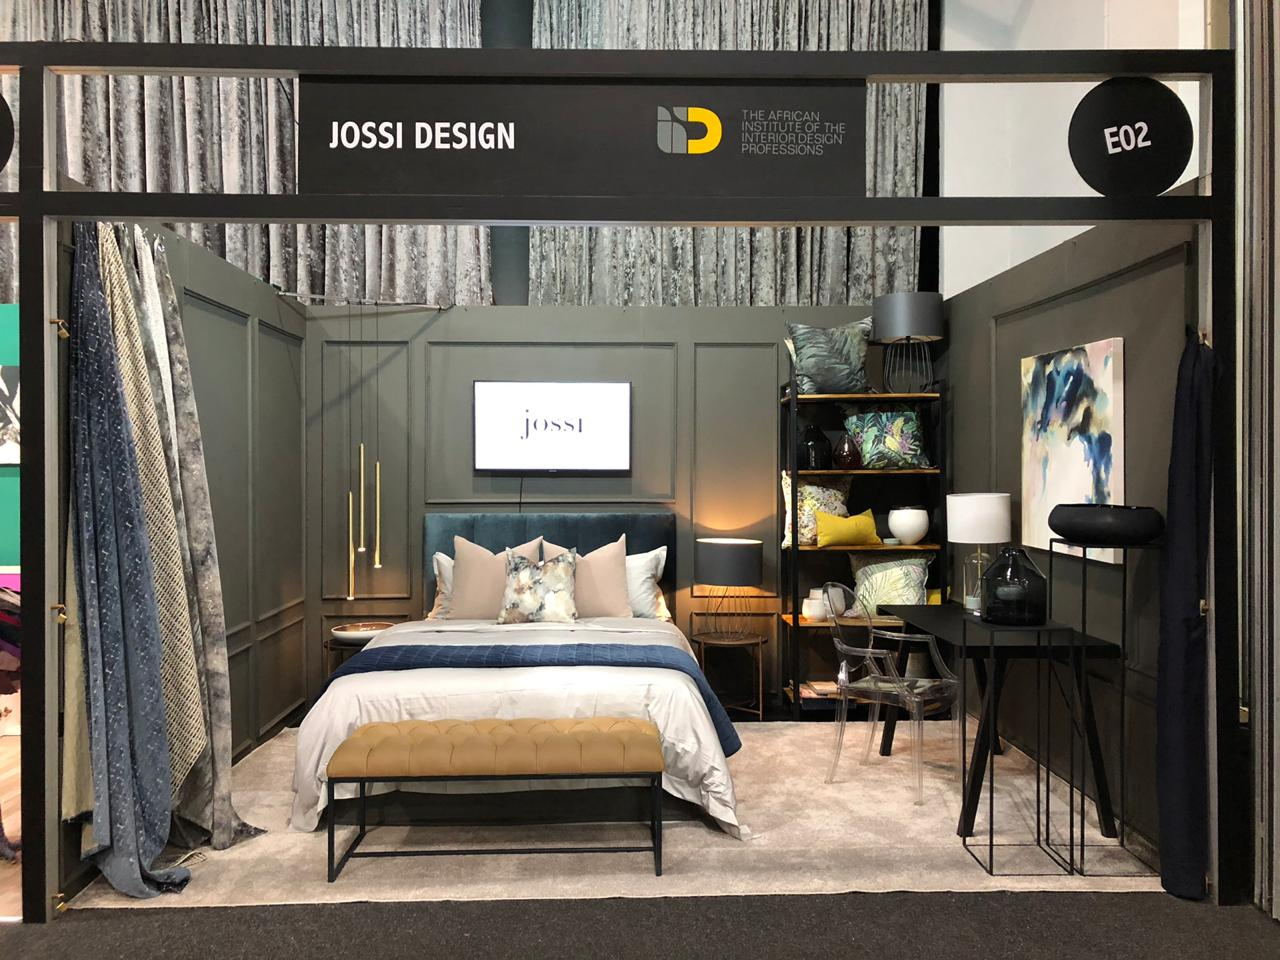 Win At The Jossi Design Stand The House And Garden Show 2019 Jossi Design